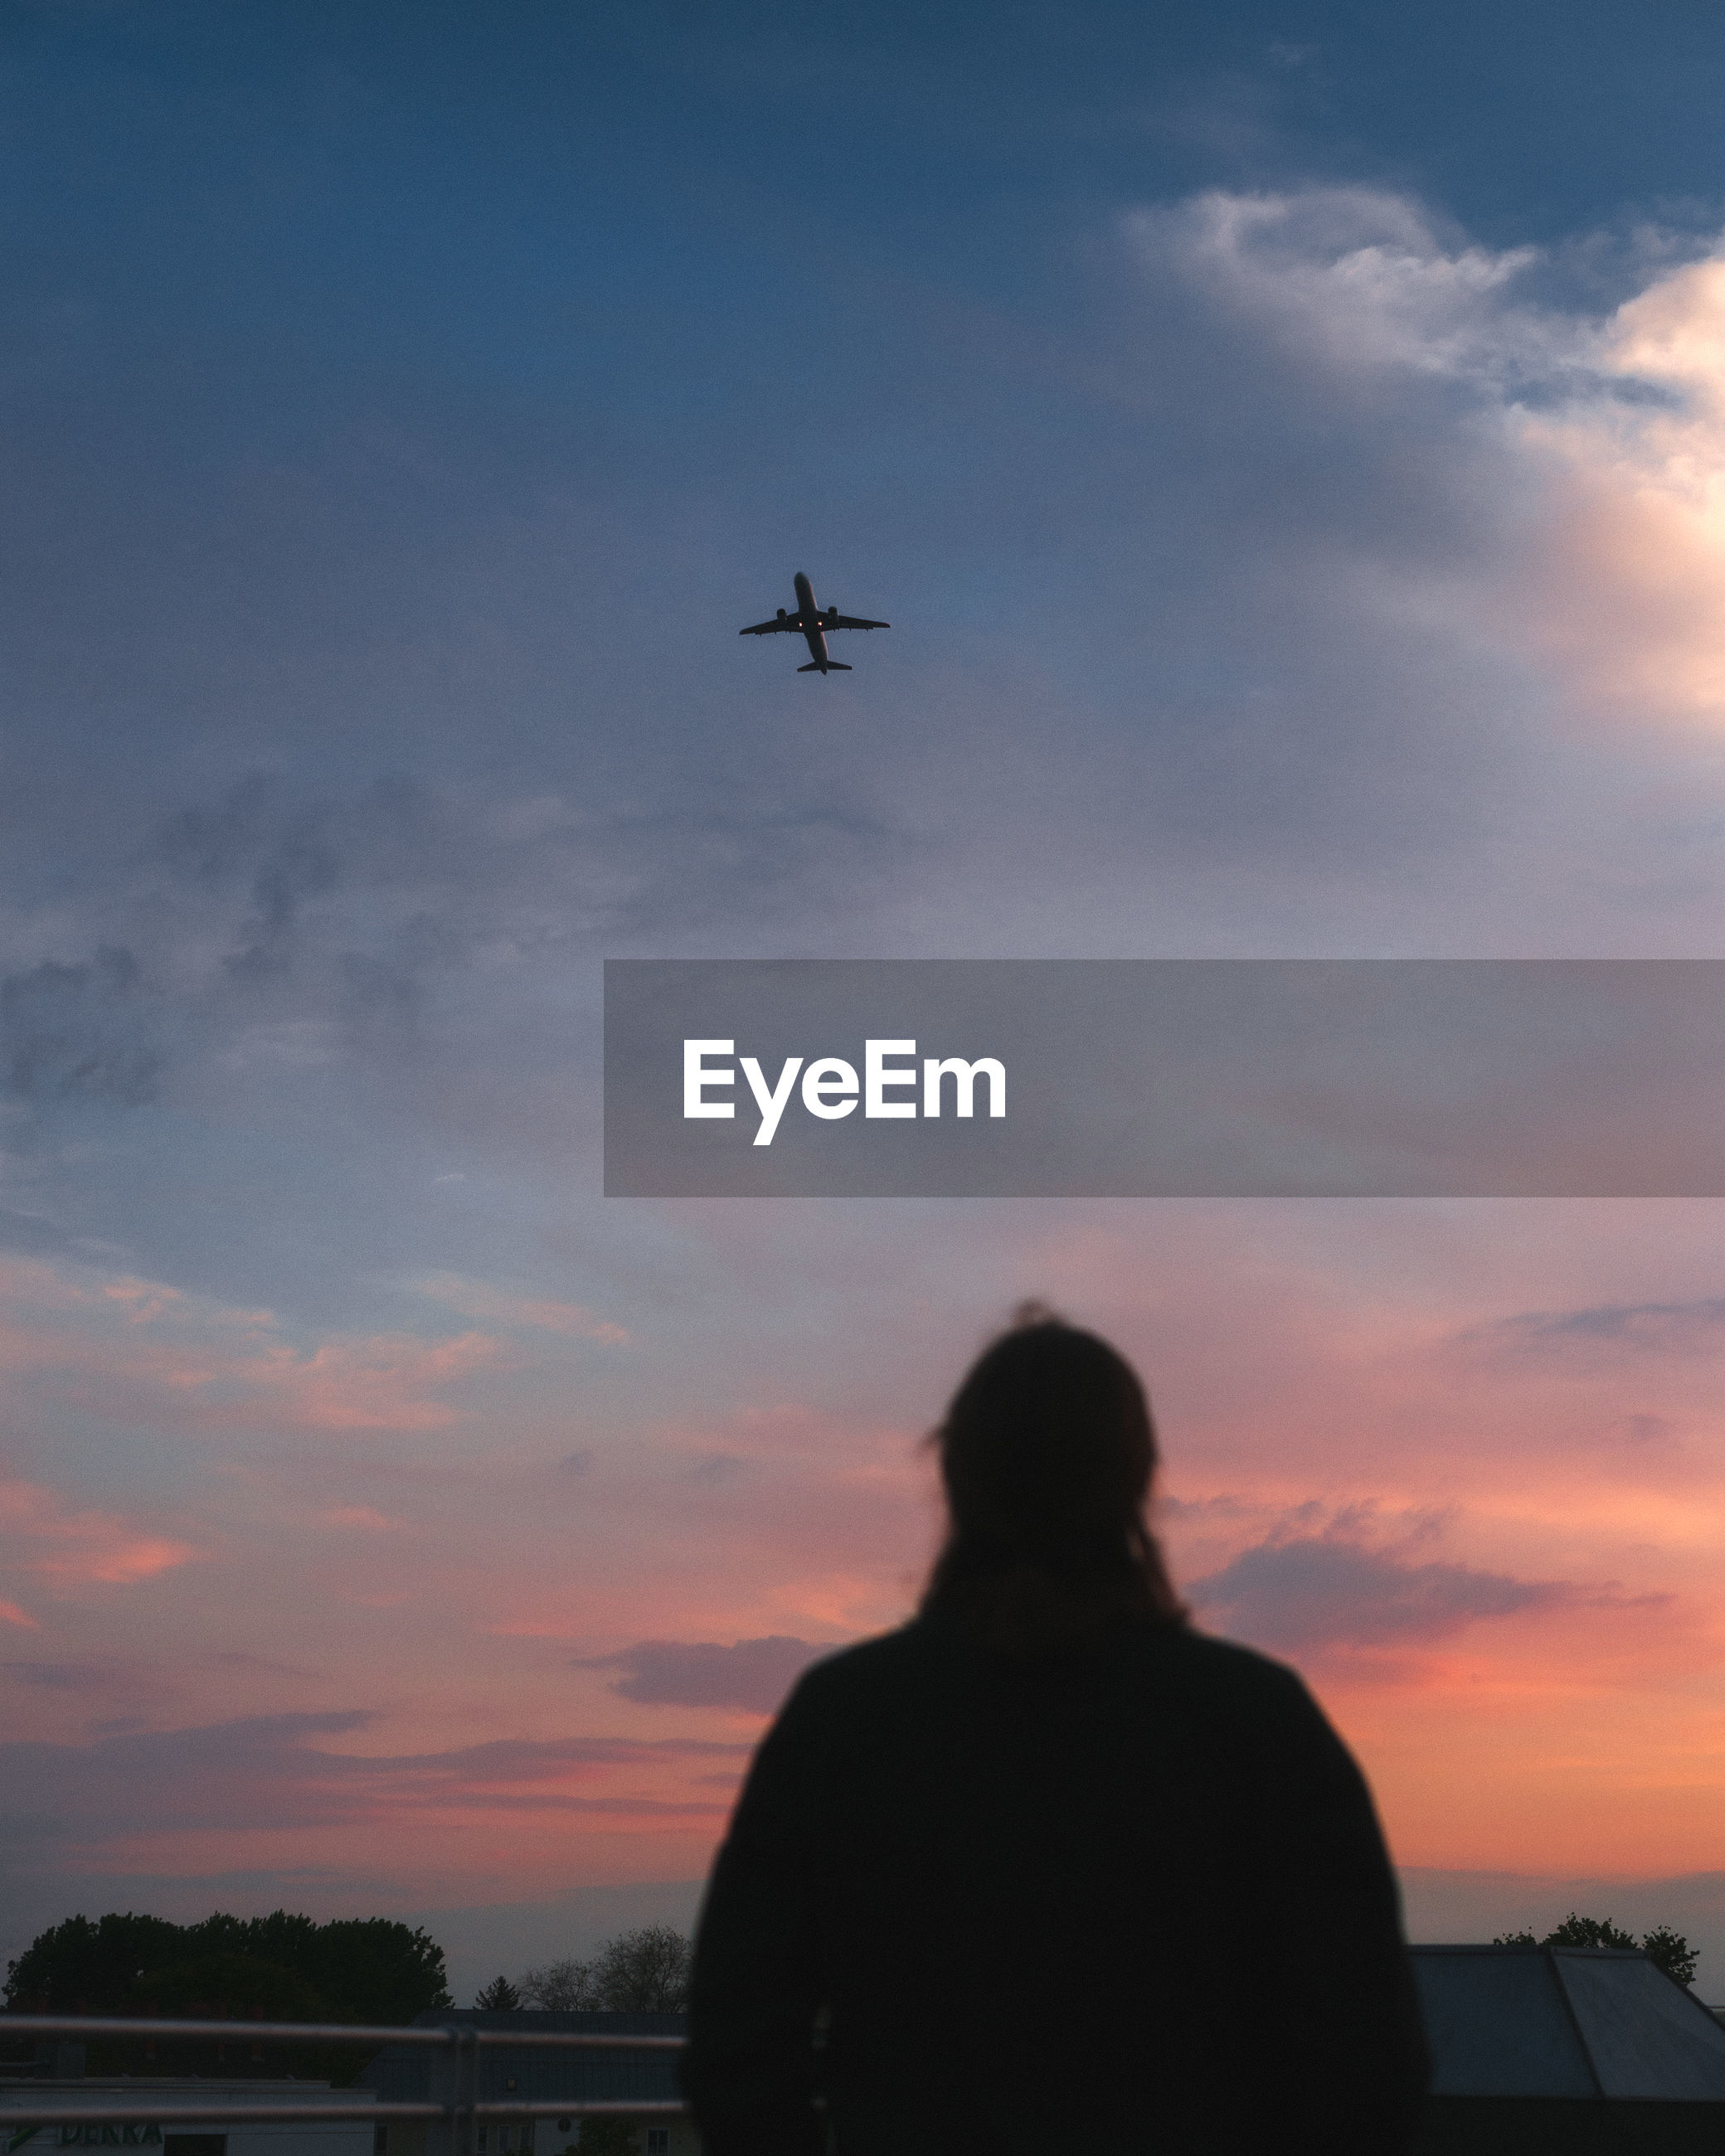 Low angle view of silhouette airplane and woman against sky during sunset